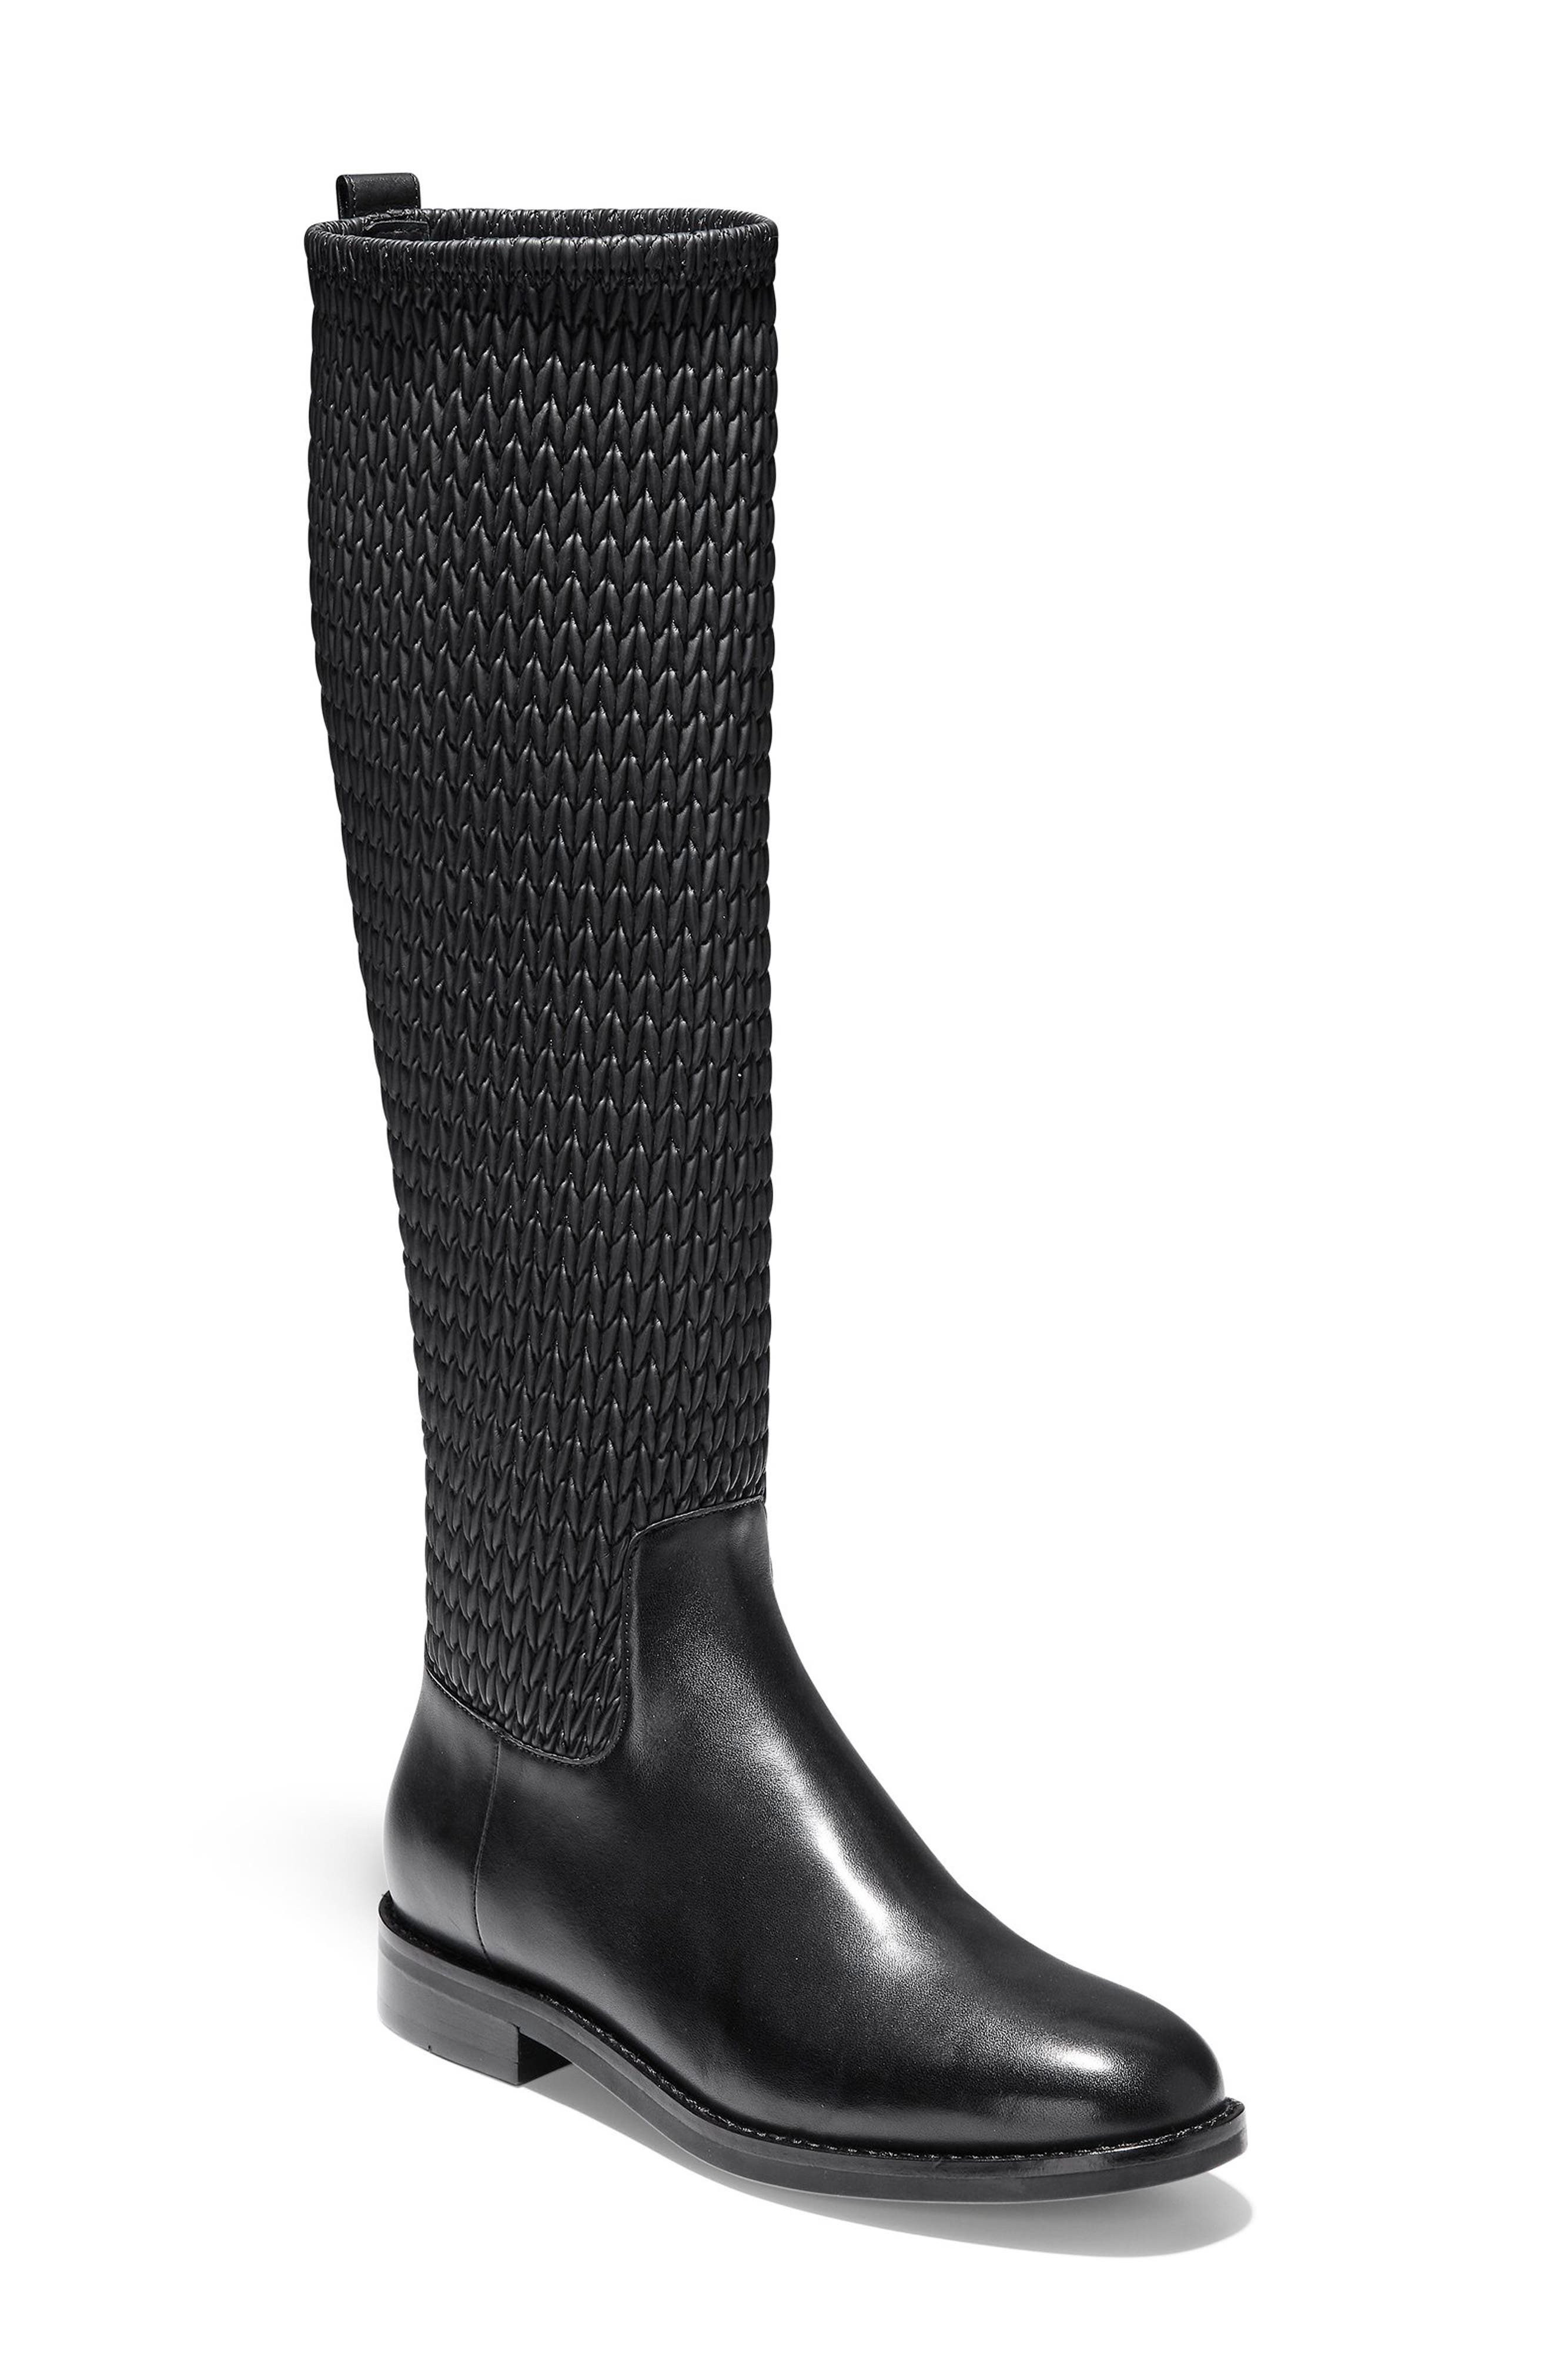 COLE HAAN, Lexi Grand Knee High Stretch Boot, Main thumbnail 1, color, BLACK LEATHER